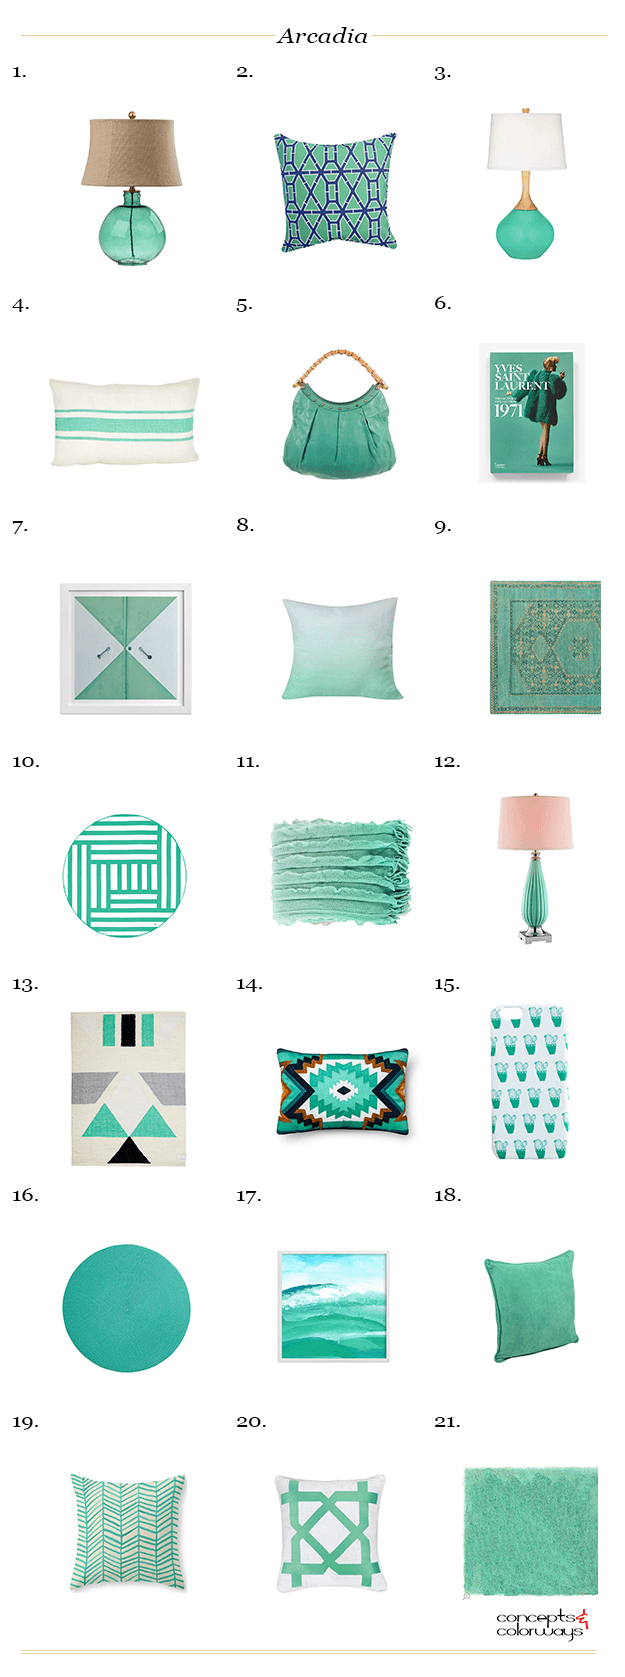 emerald green mint green interior design product roundup